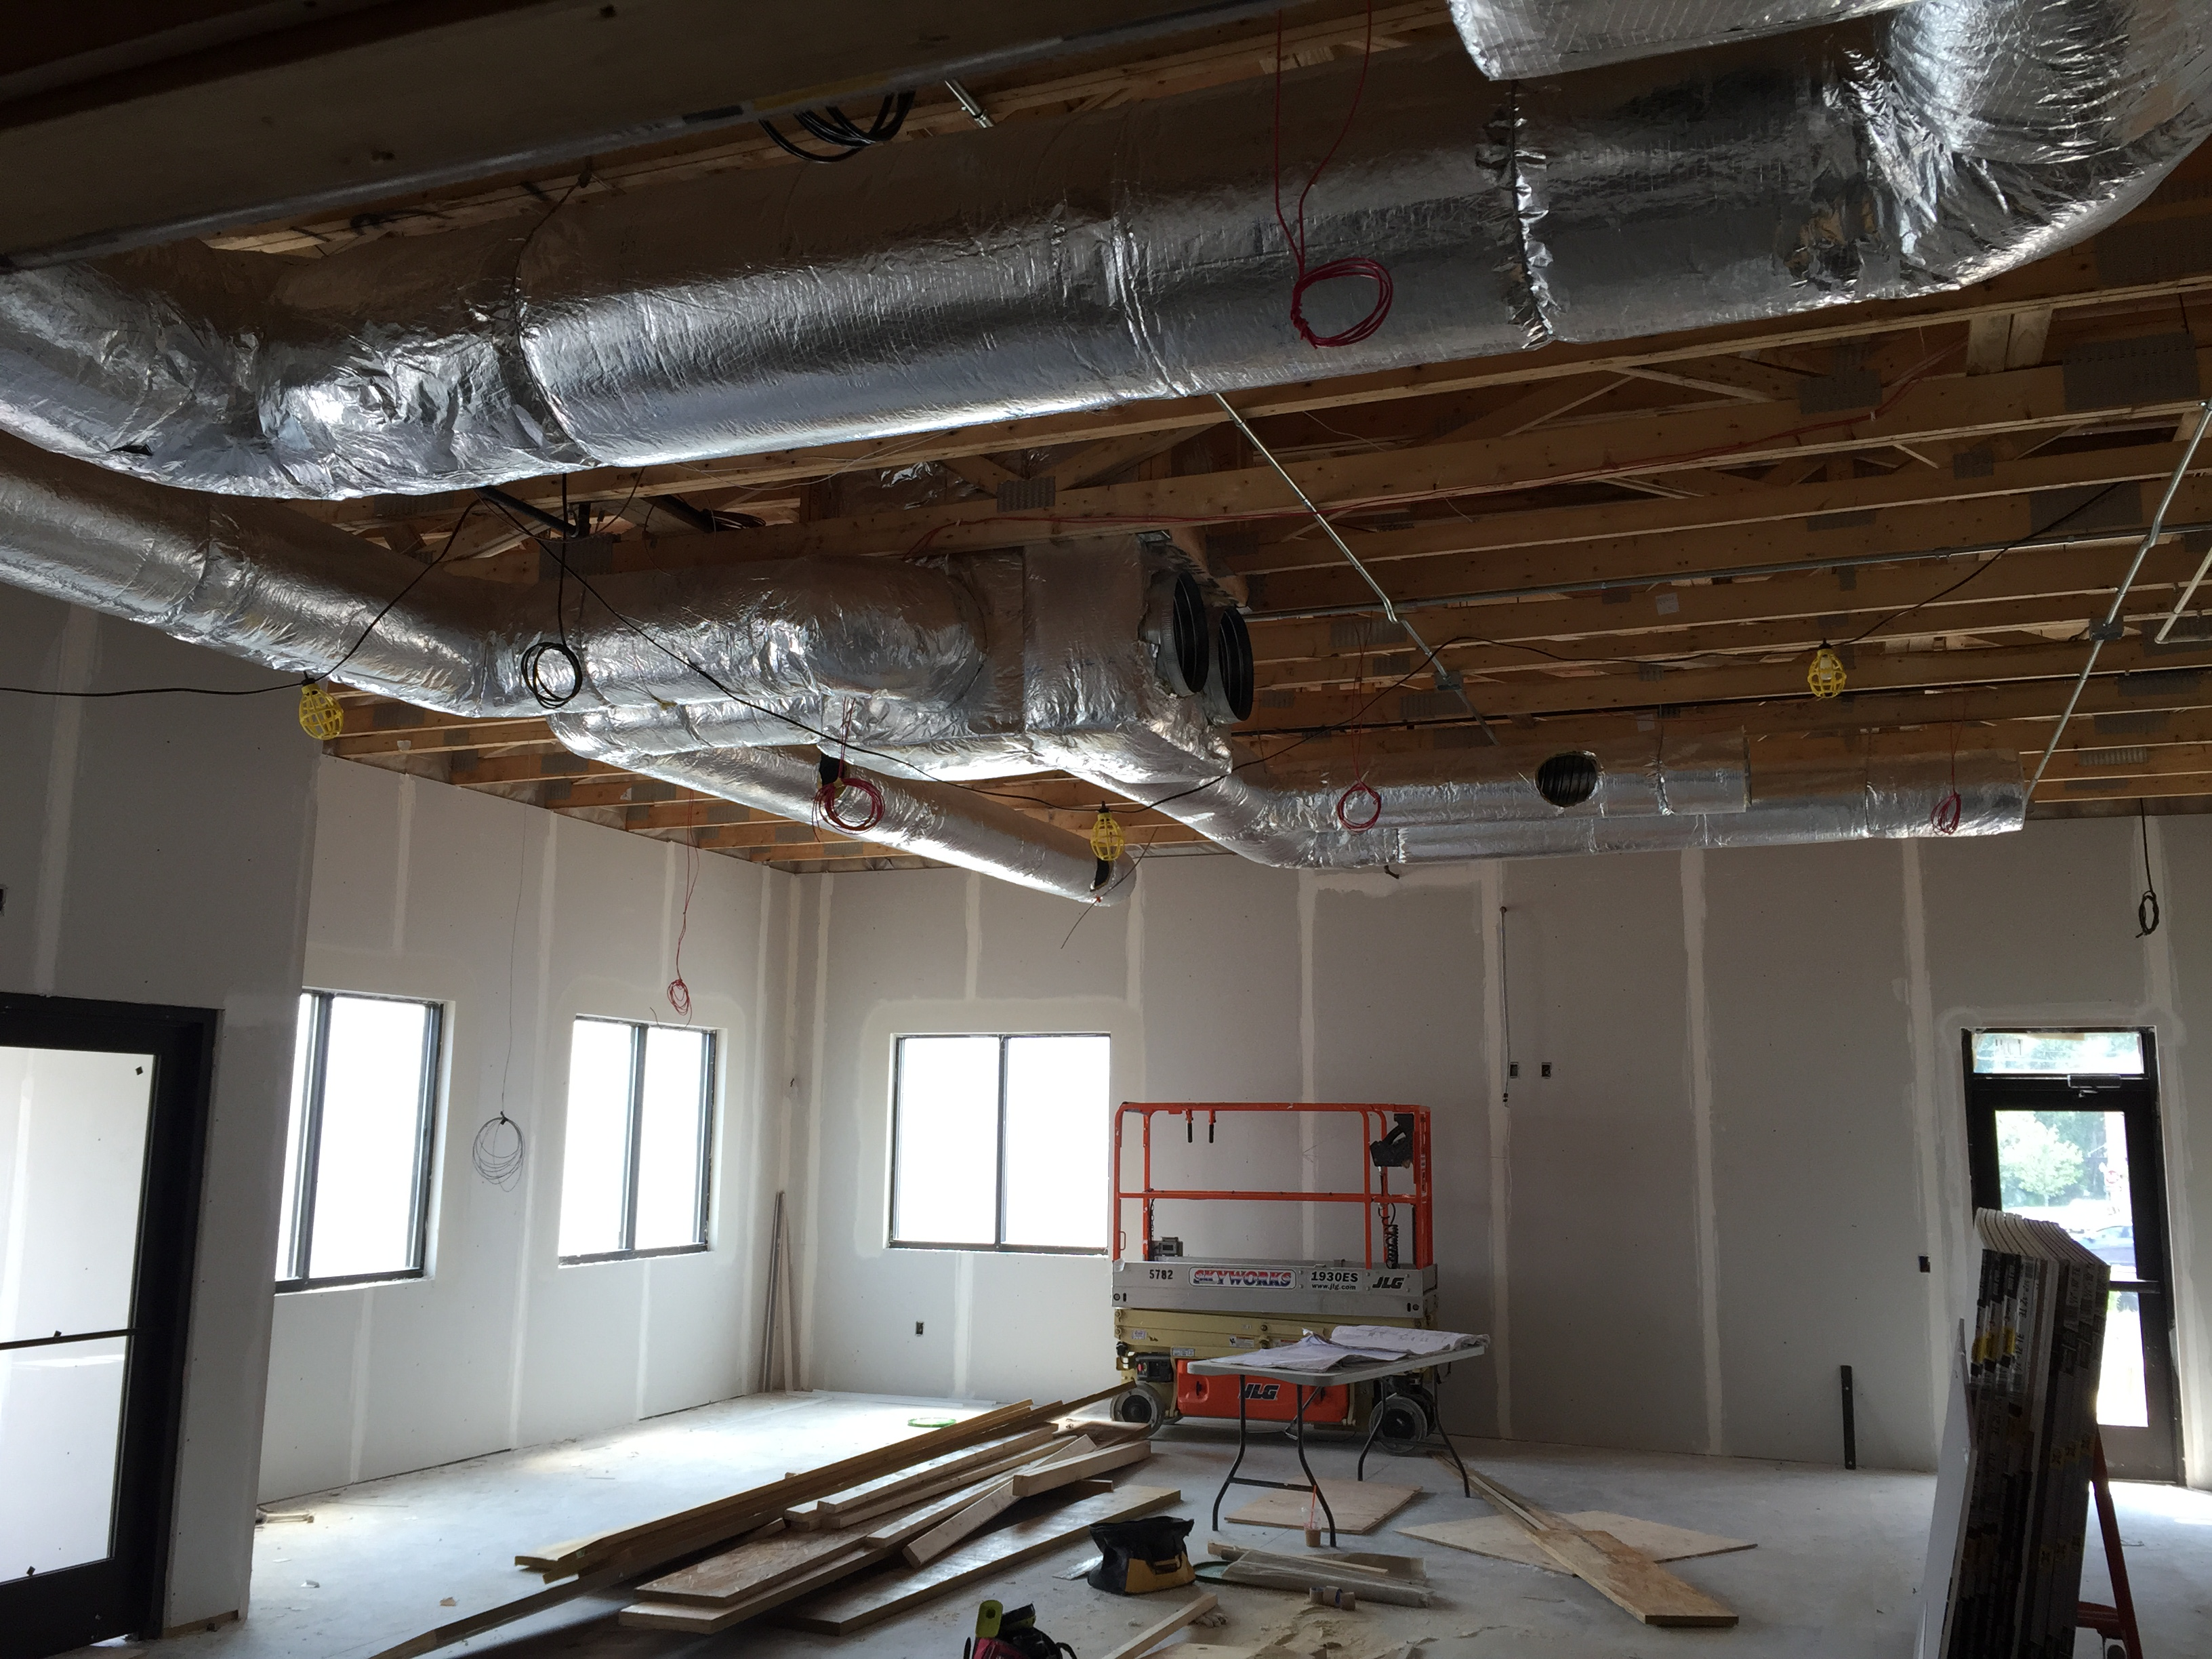 Kitchen Design Queens Ny Dairy Queen Cicero Ny Construction Hvac Progress Direct